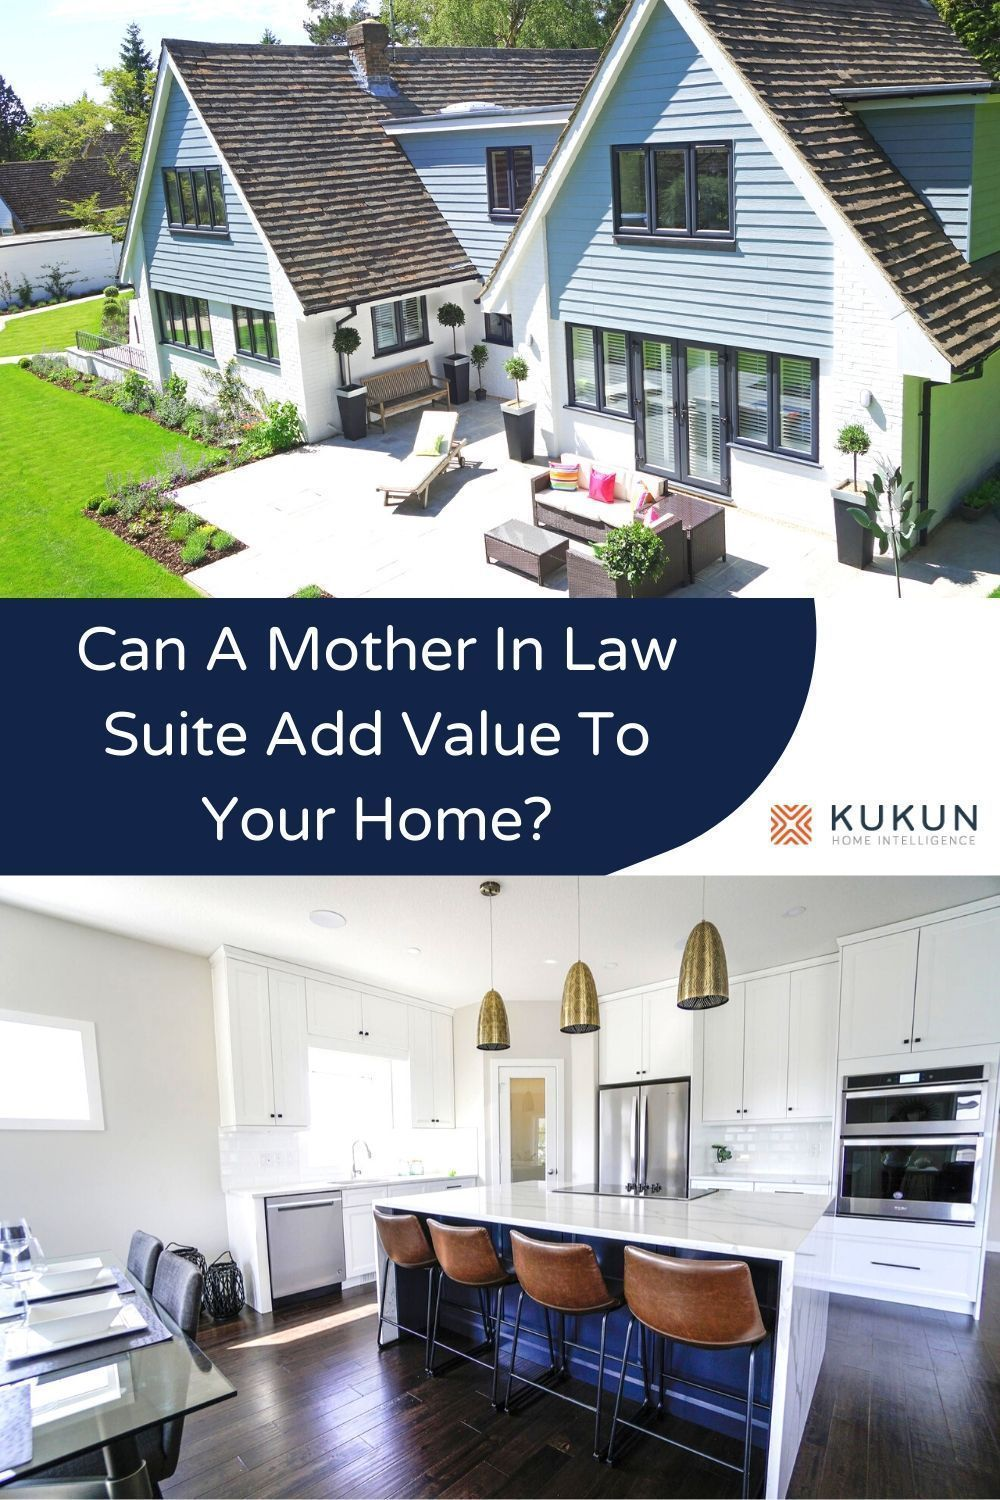 Does A Mother In Law Suite Add Value To A Home How Much Western Home Decor Minimalist Home Interior Home Additions